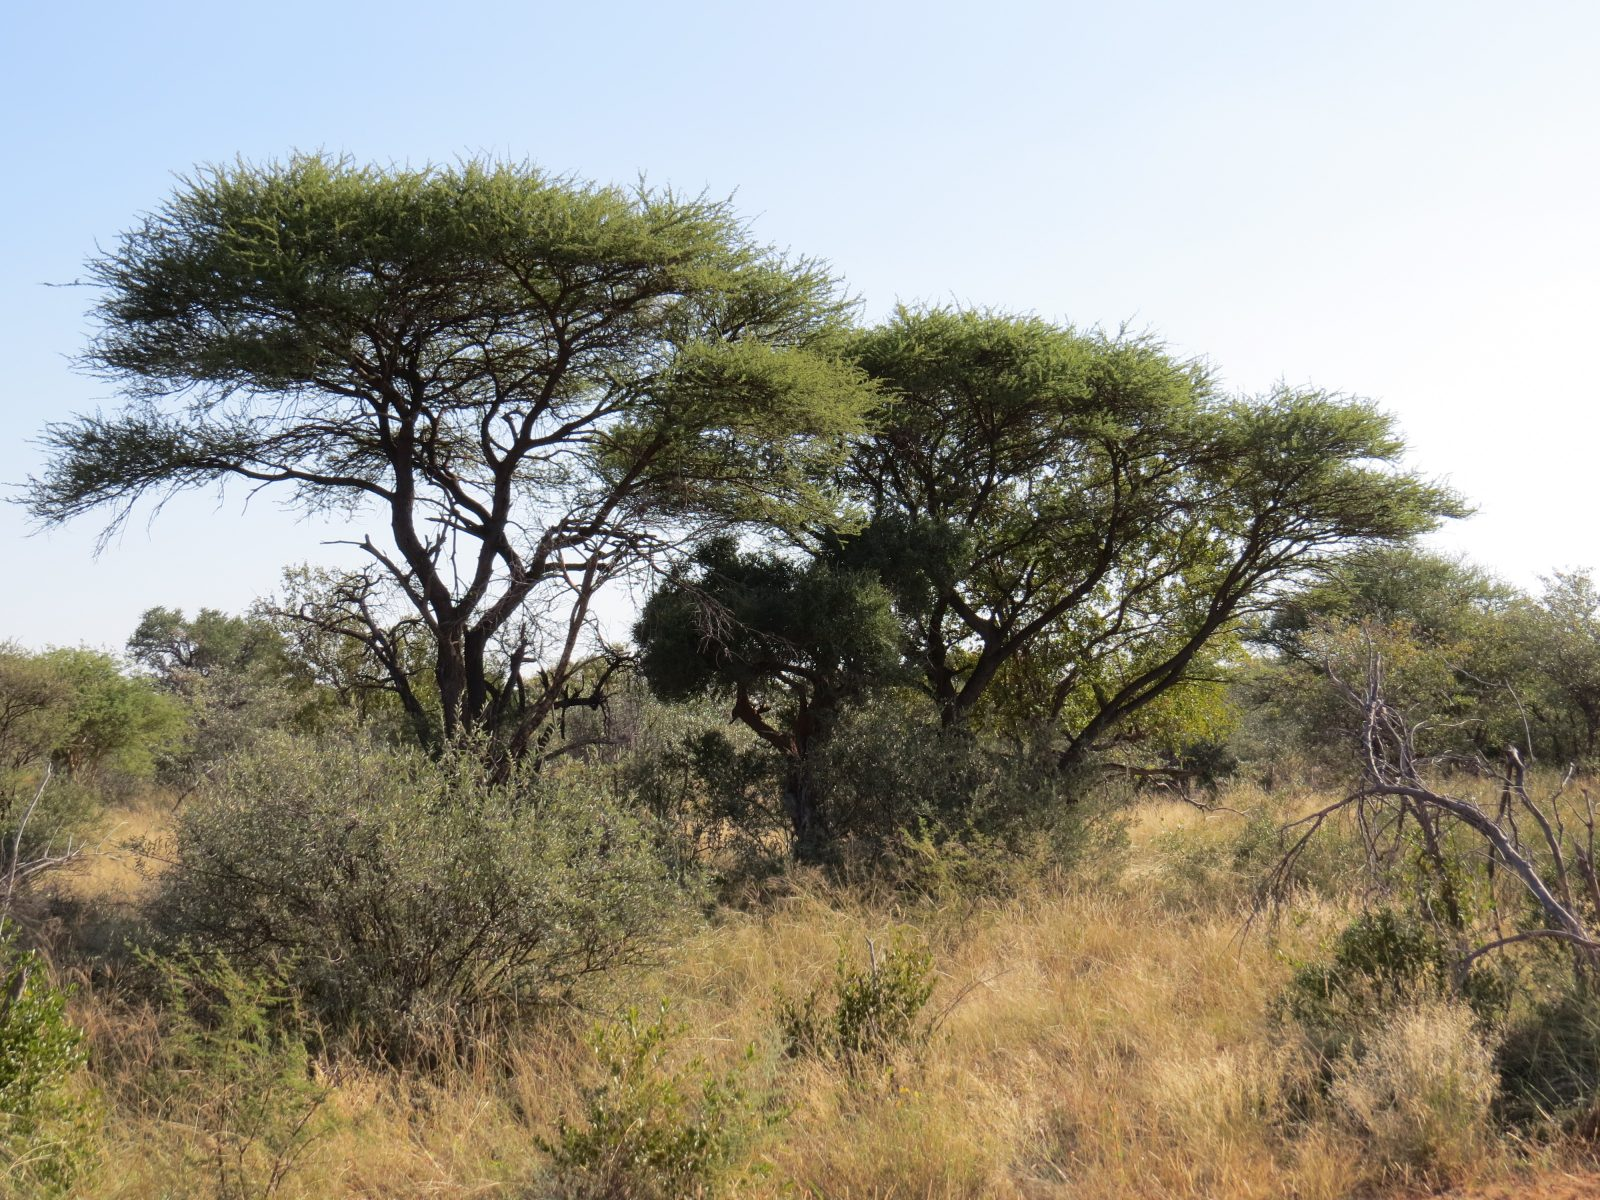 Trees in the bush. Photo by Chivic African Safaris.